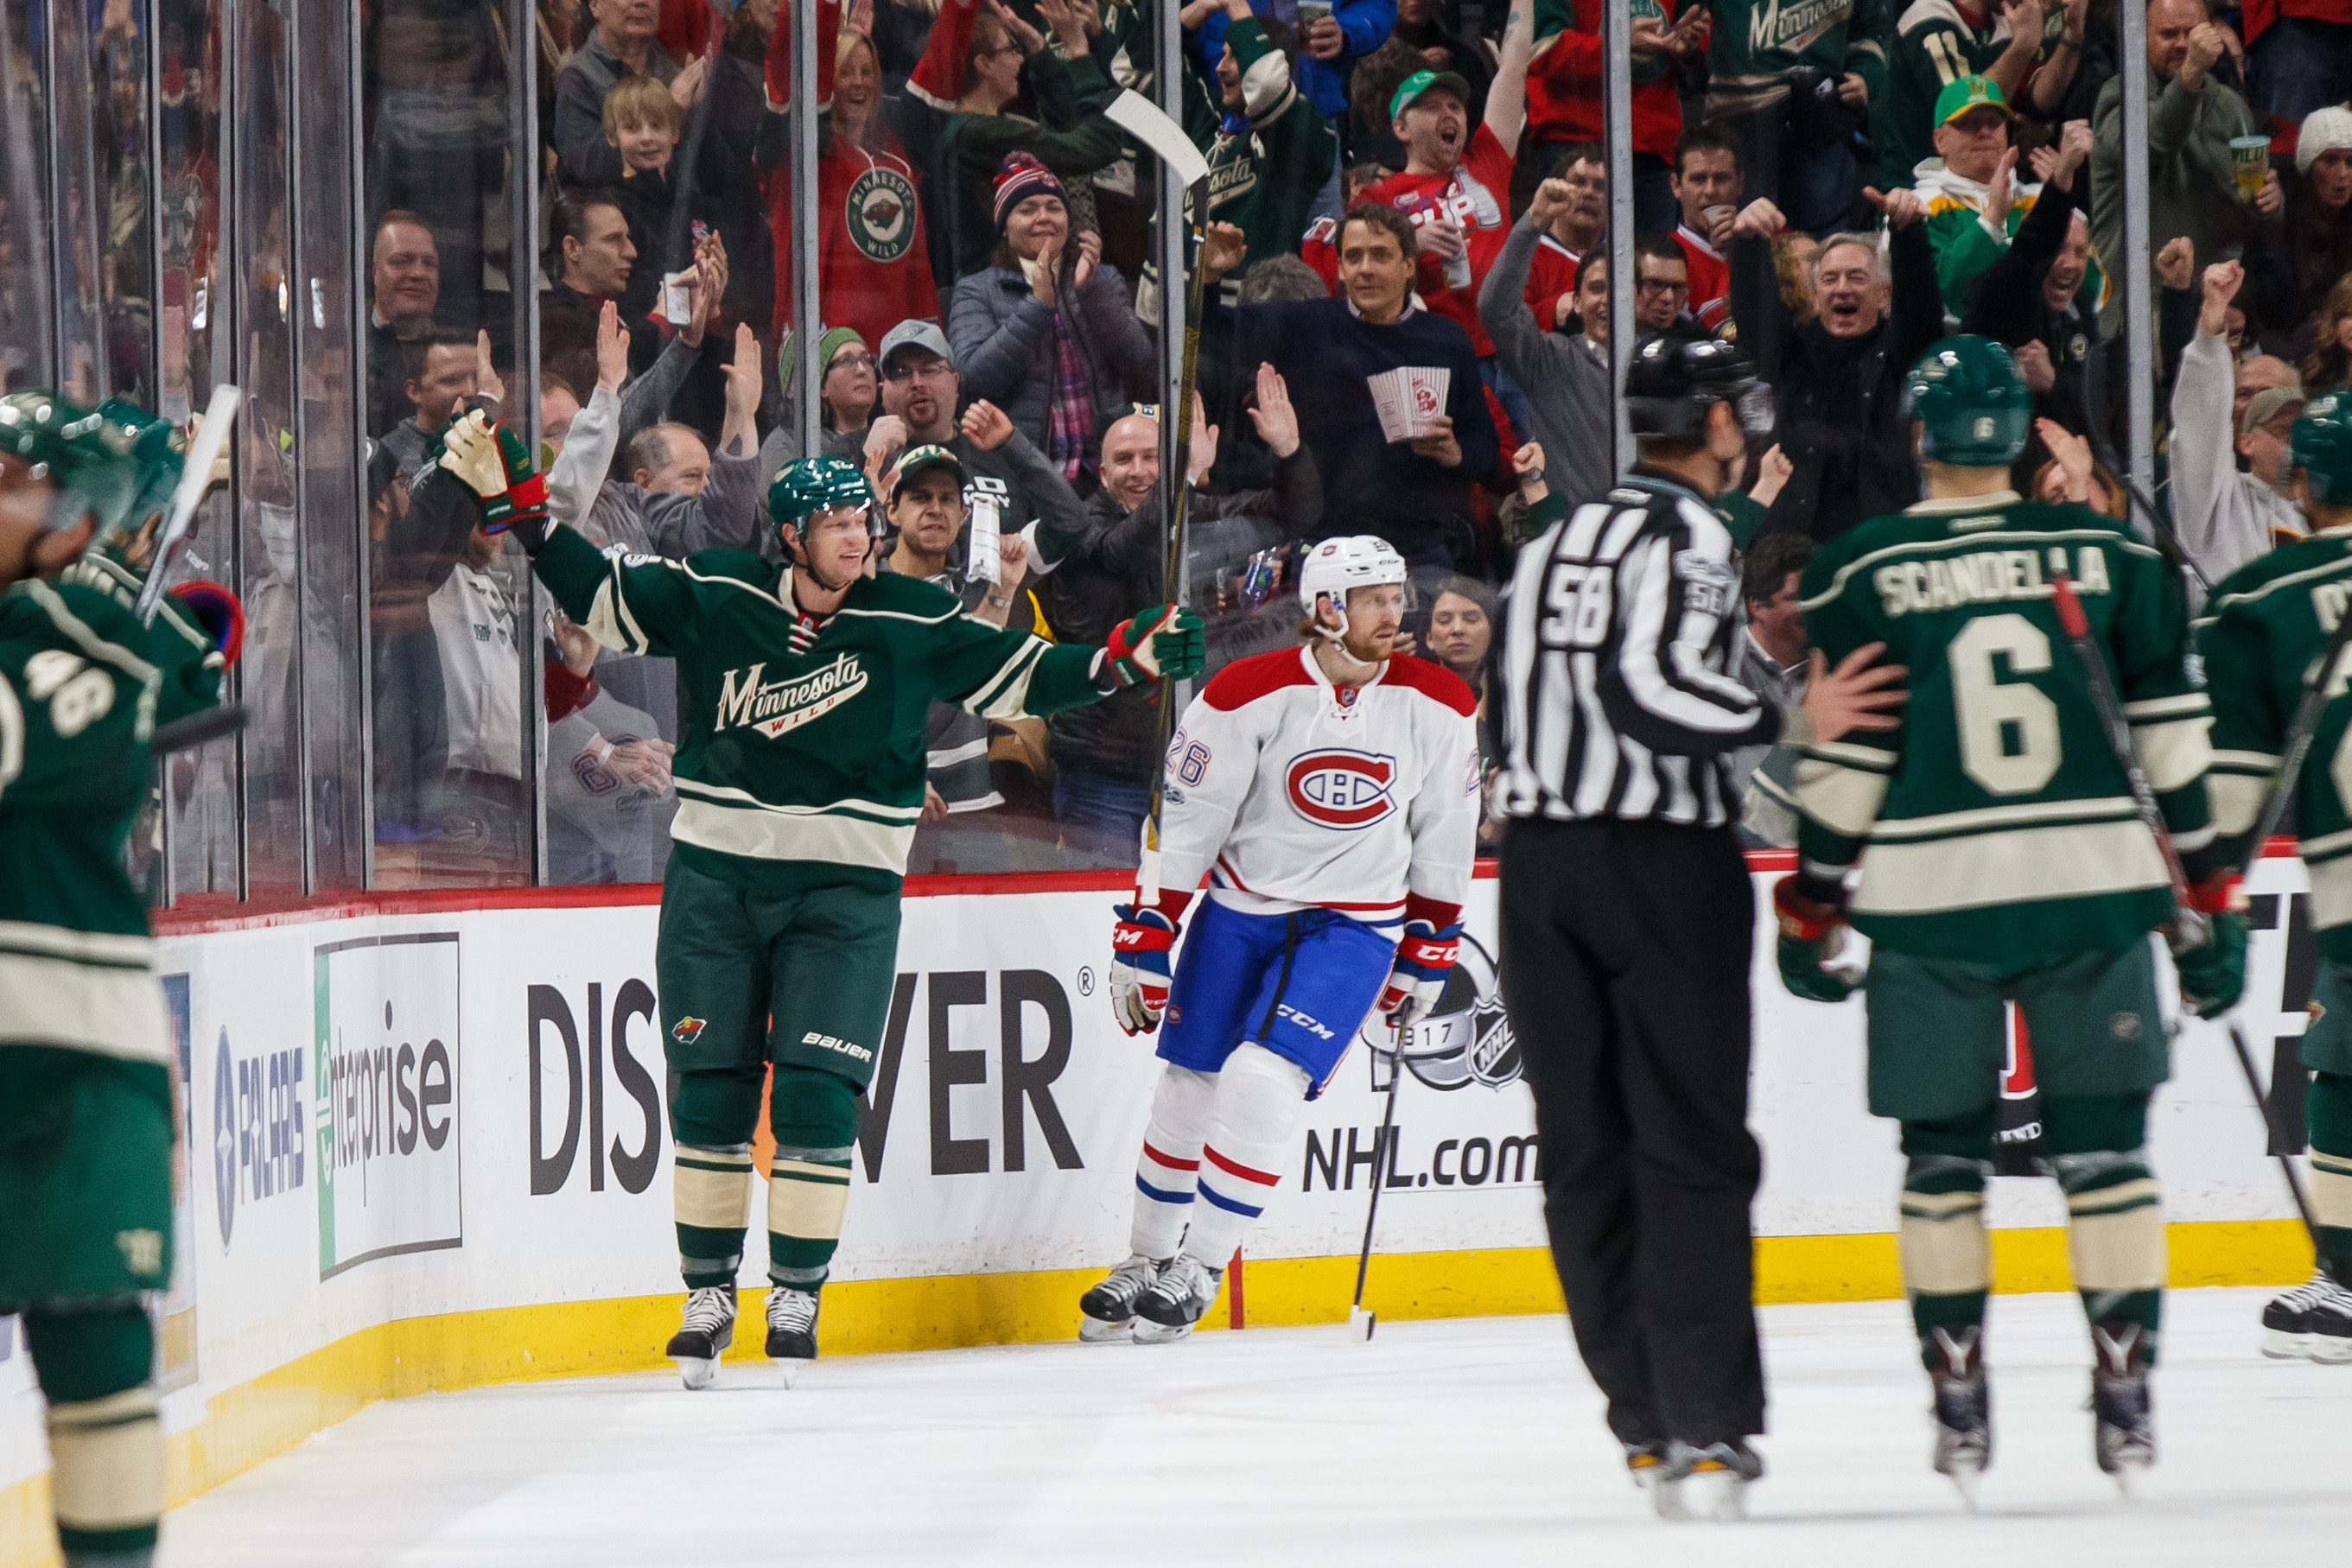 9806569-nhl-montreal-canadiens-at-minnesota-wild